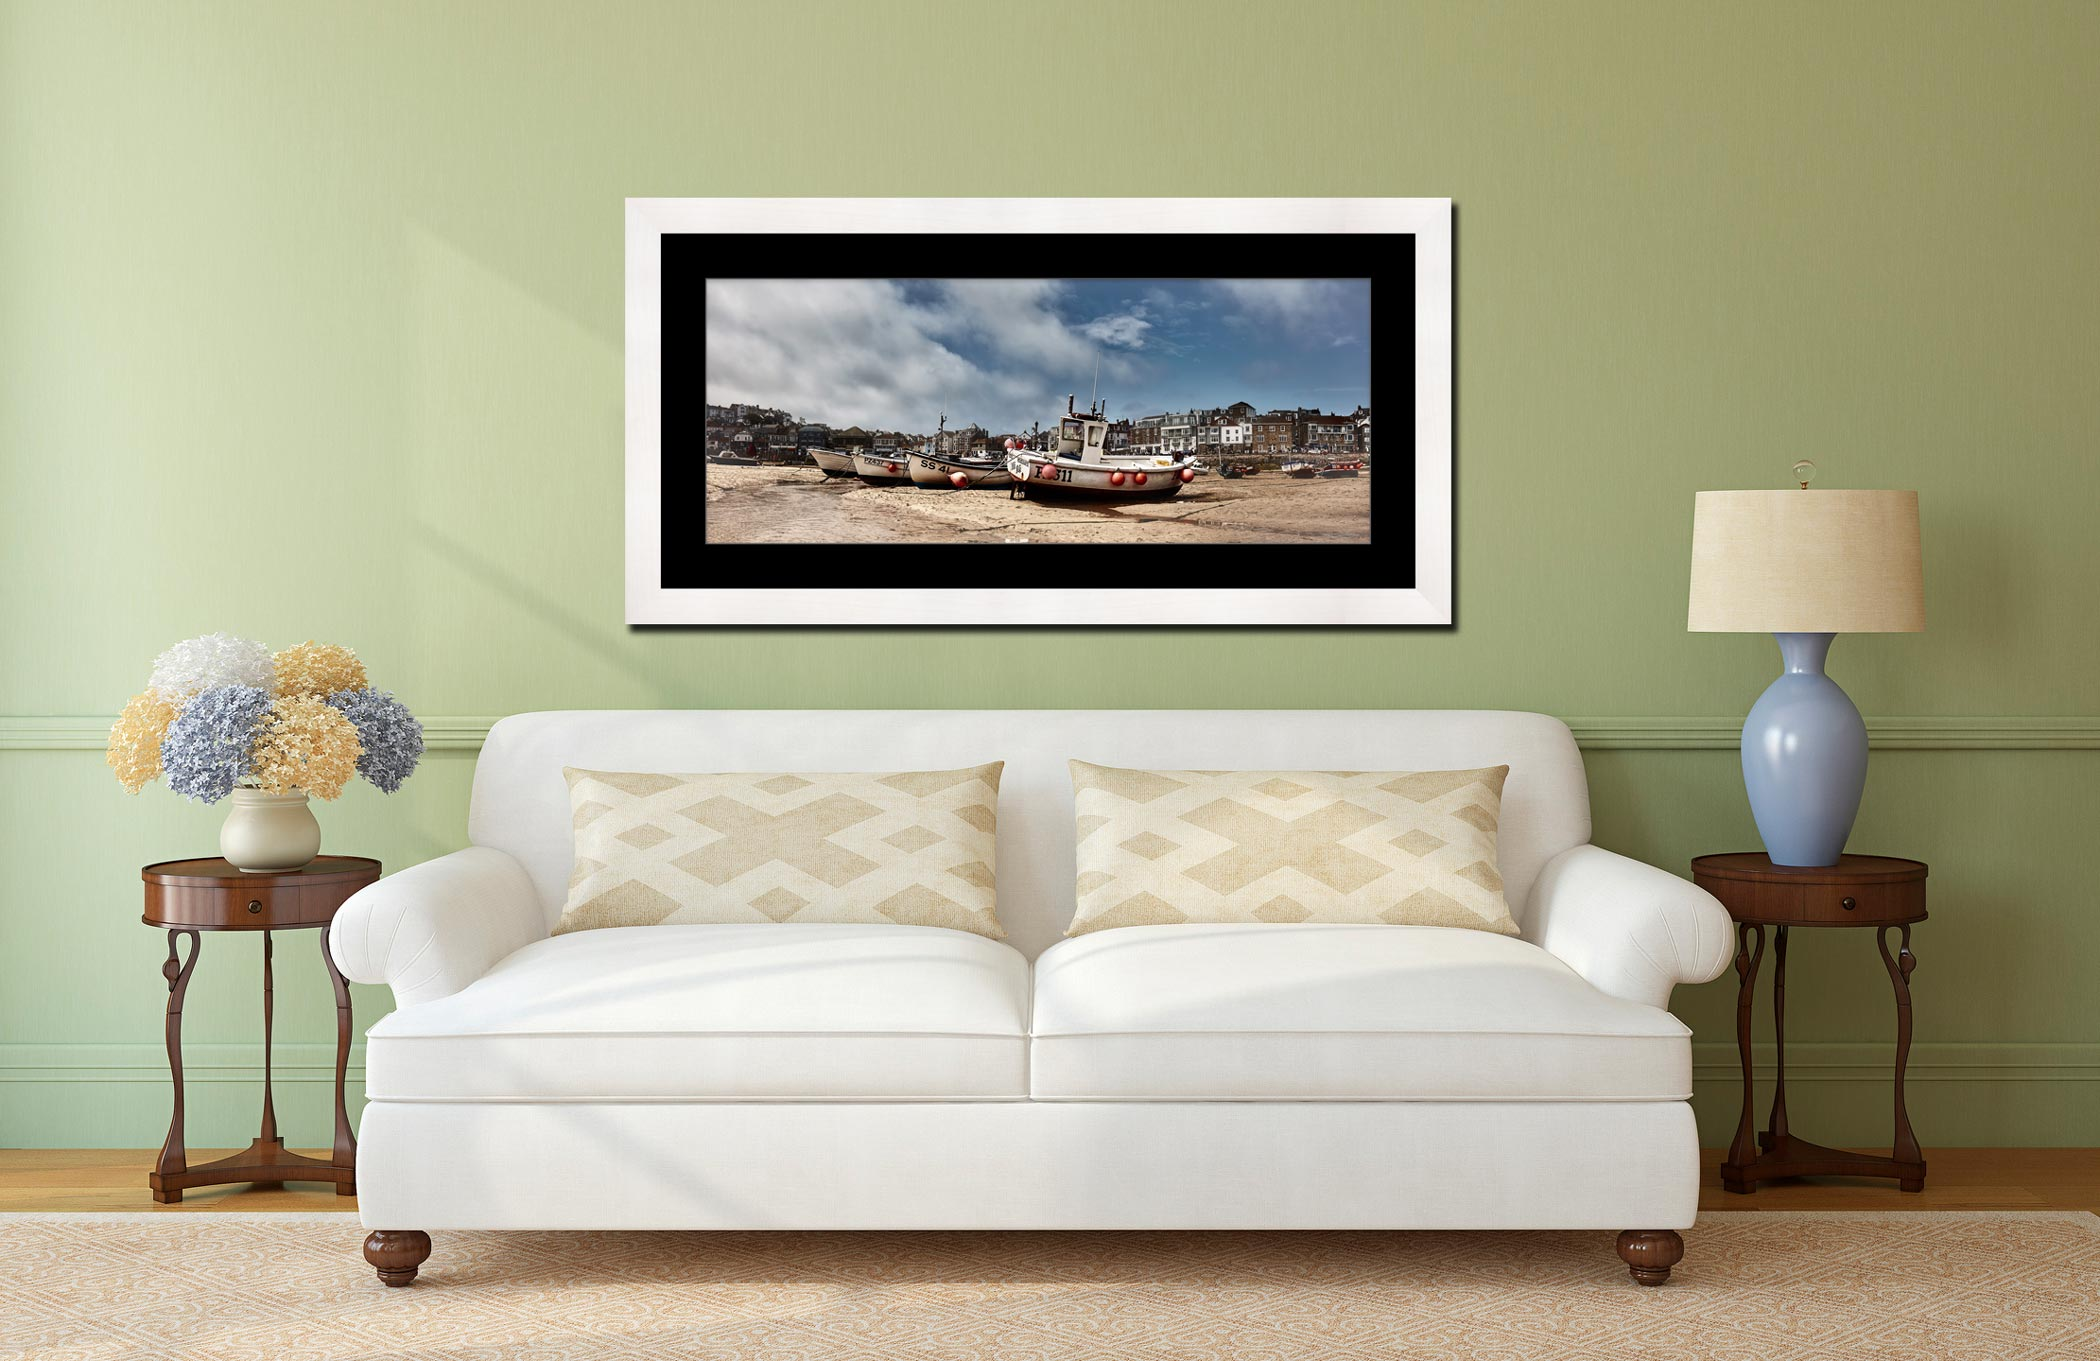 White Boats St Ives - Framed Print with Mount on Wall